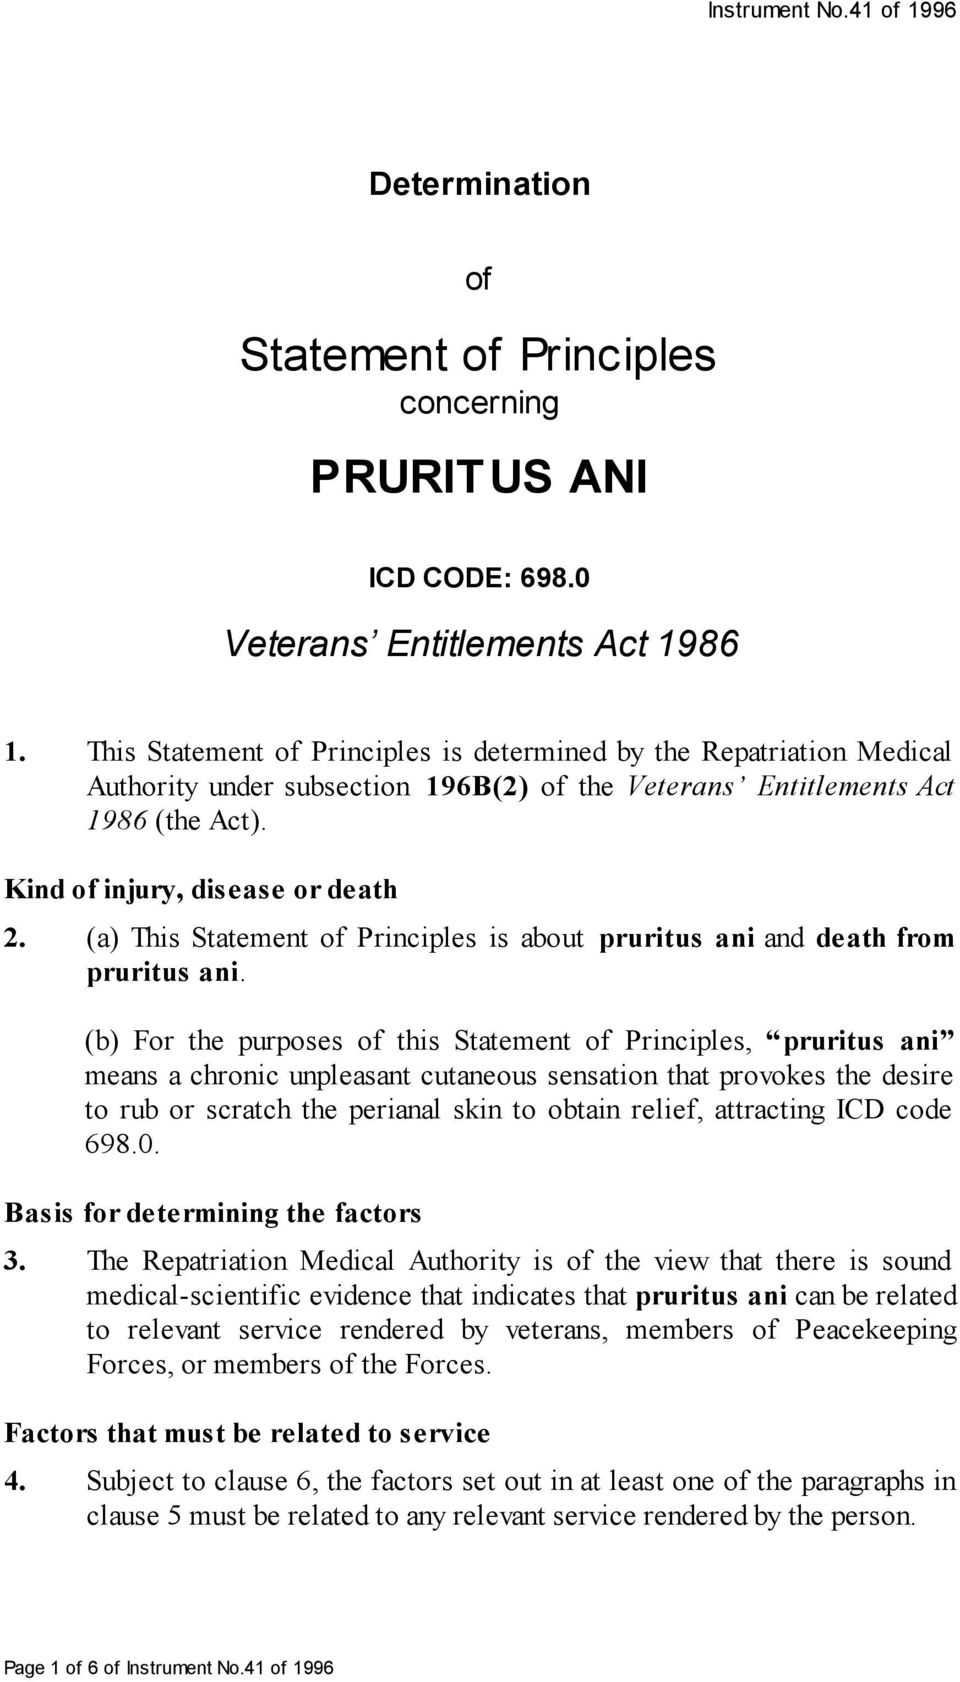 (a) This Statement of Principles is about pruritus ani and death from pruritus ani.